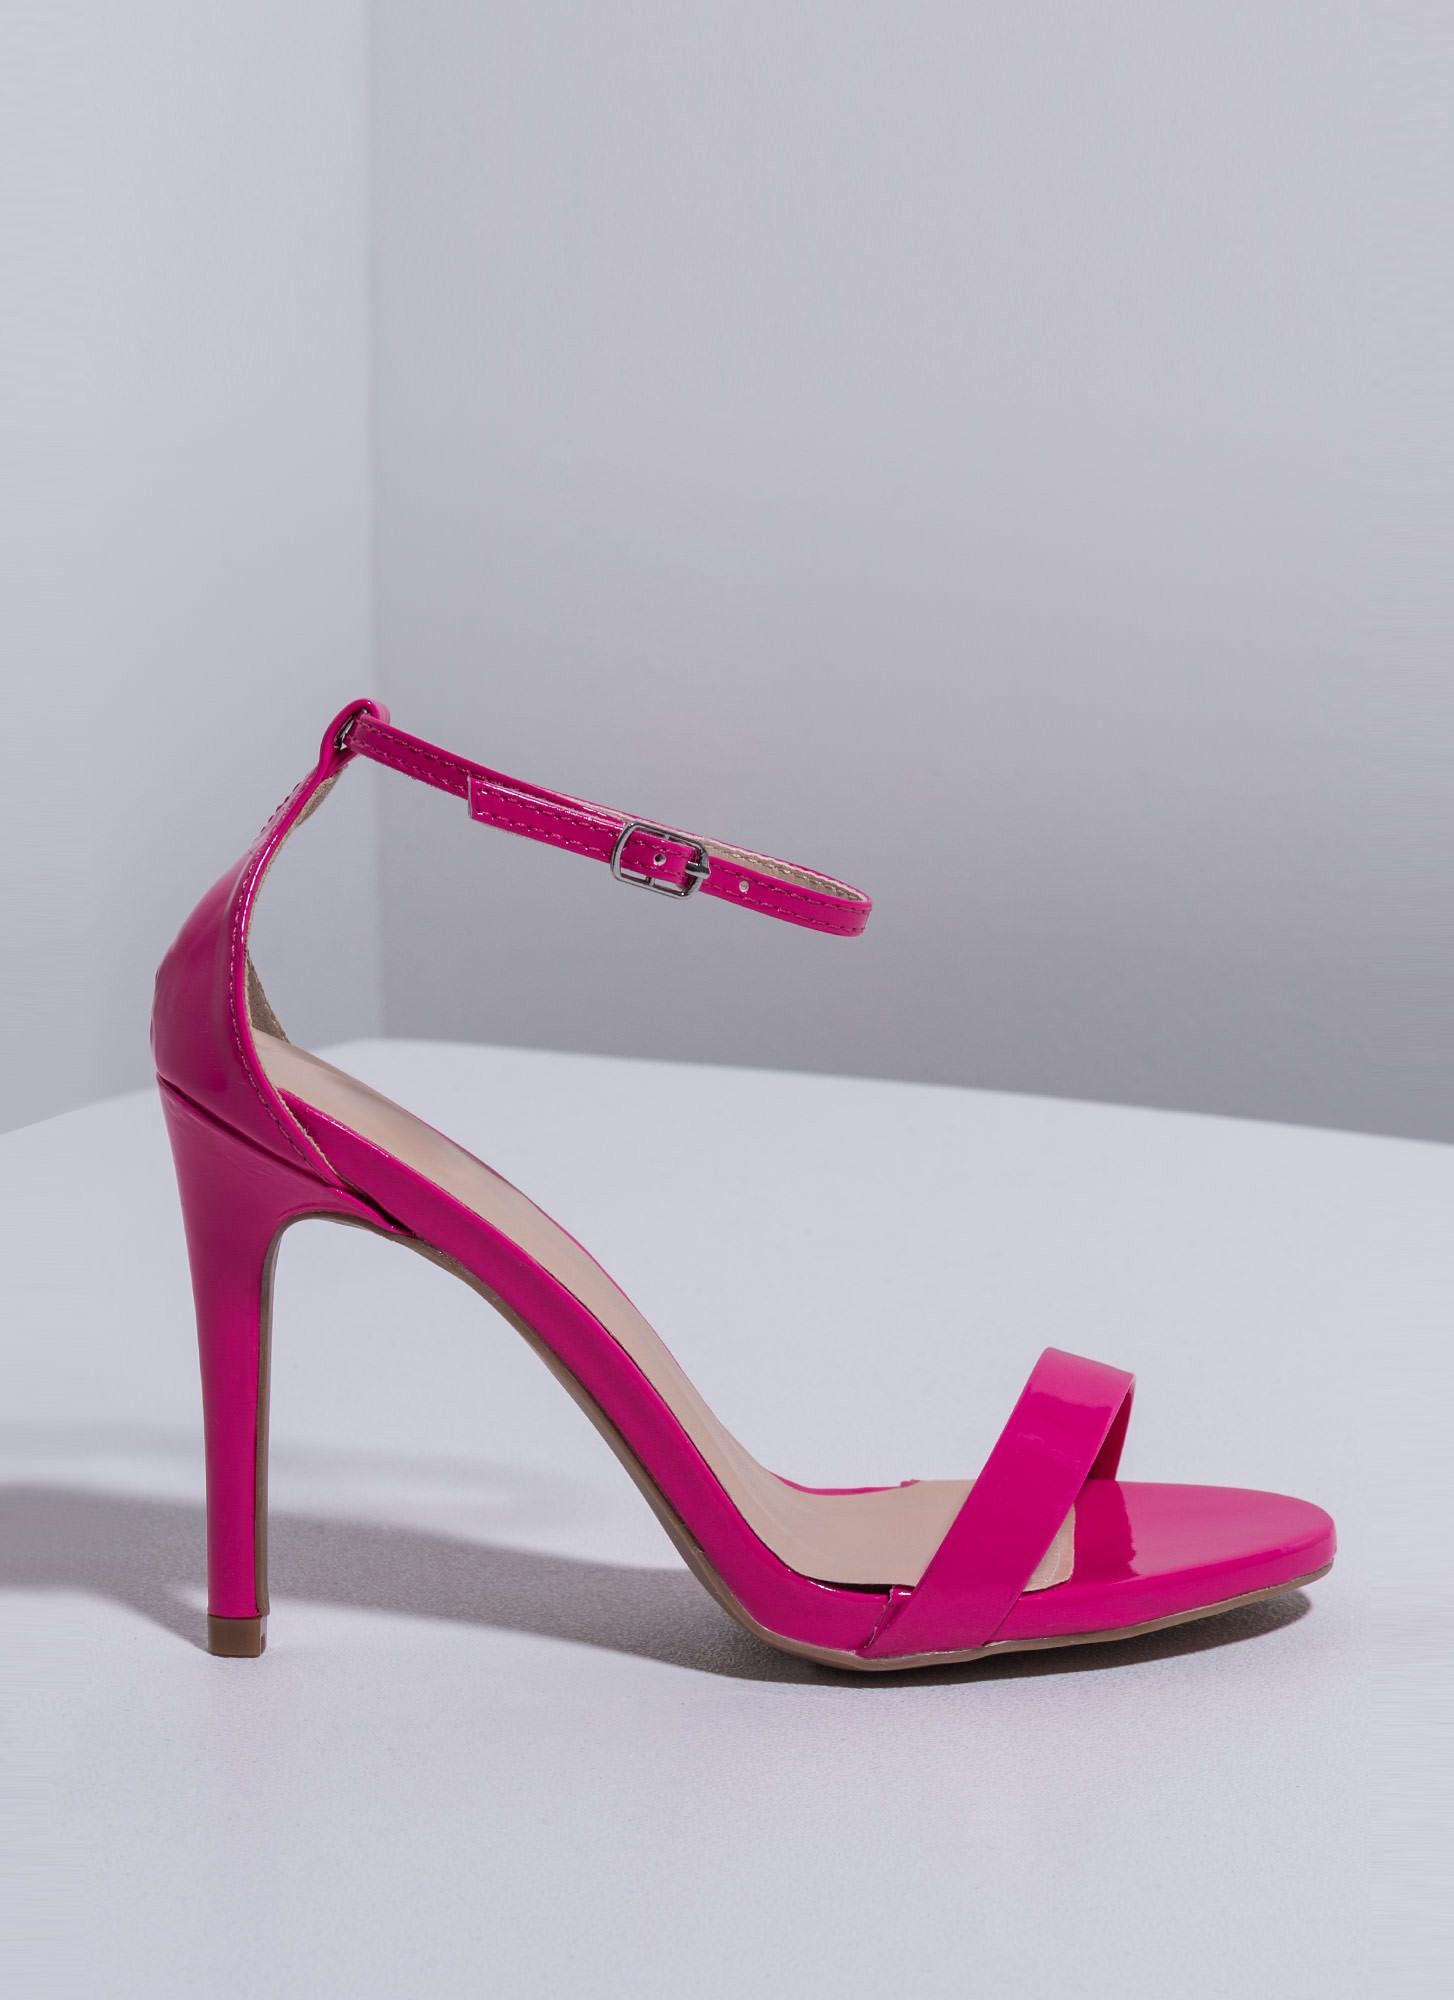 The Skinny Faux Patent Ankle Strap Heels